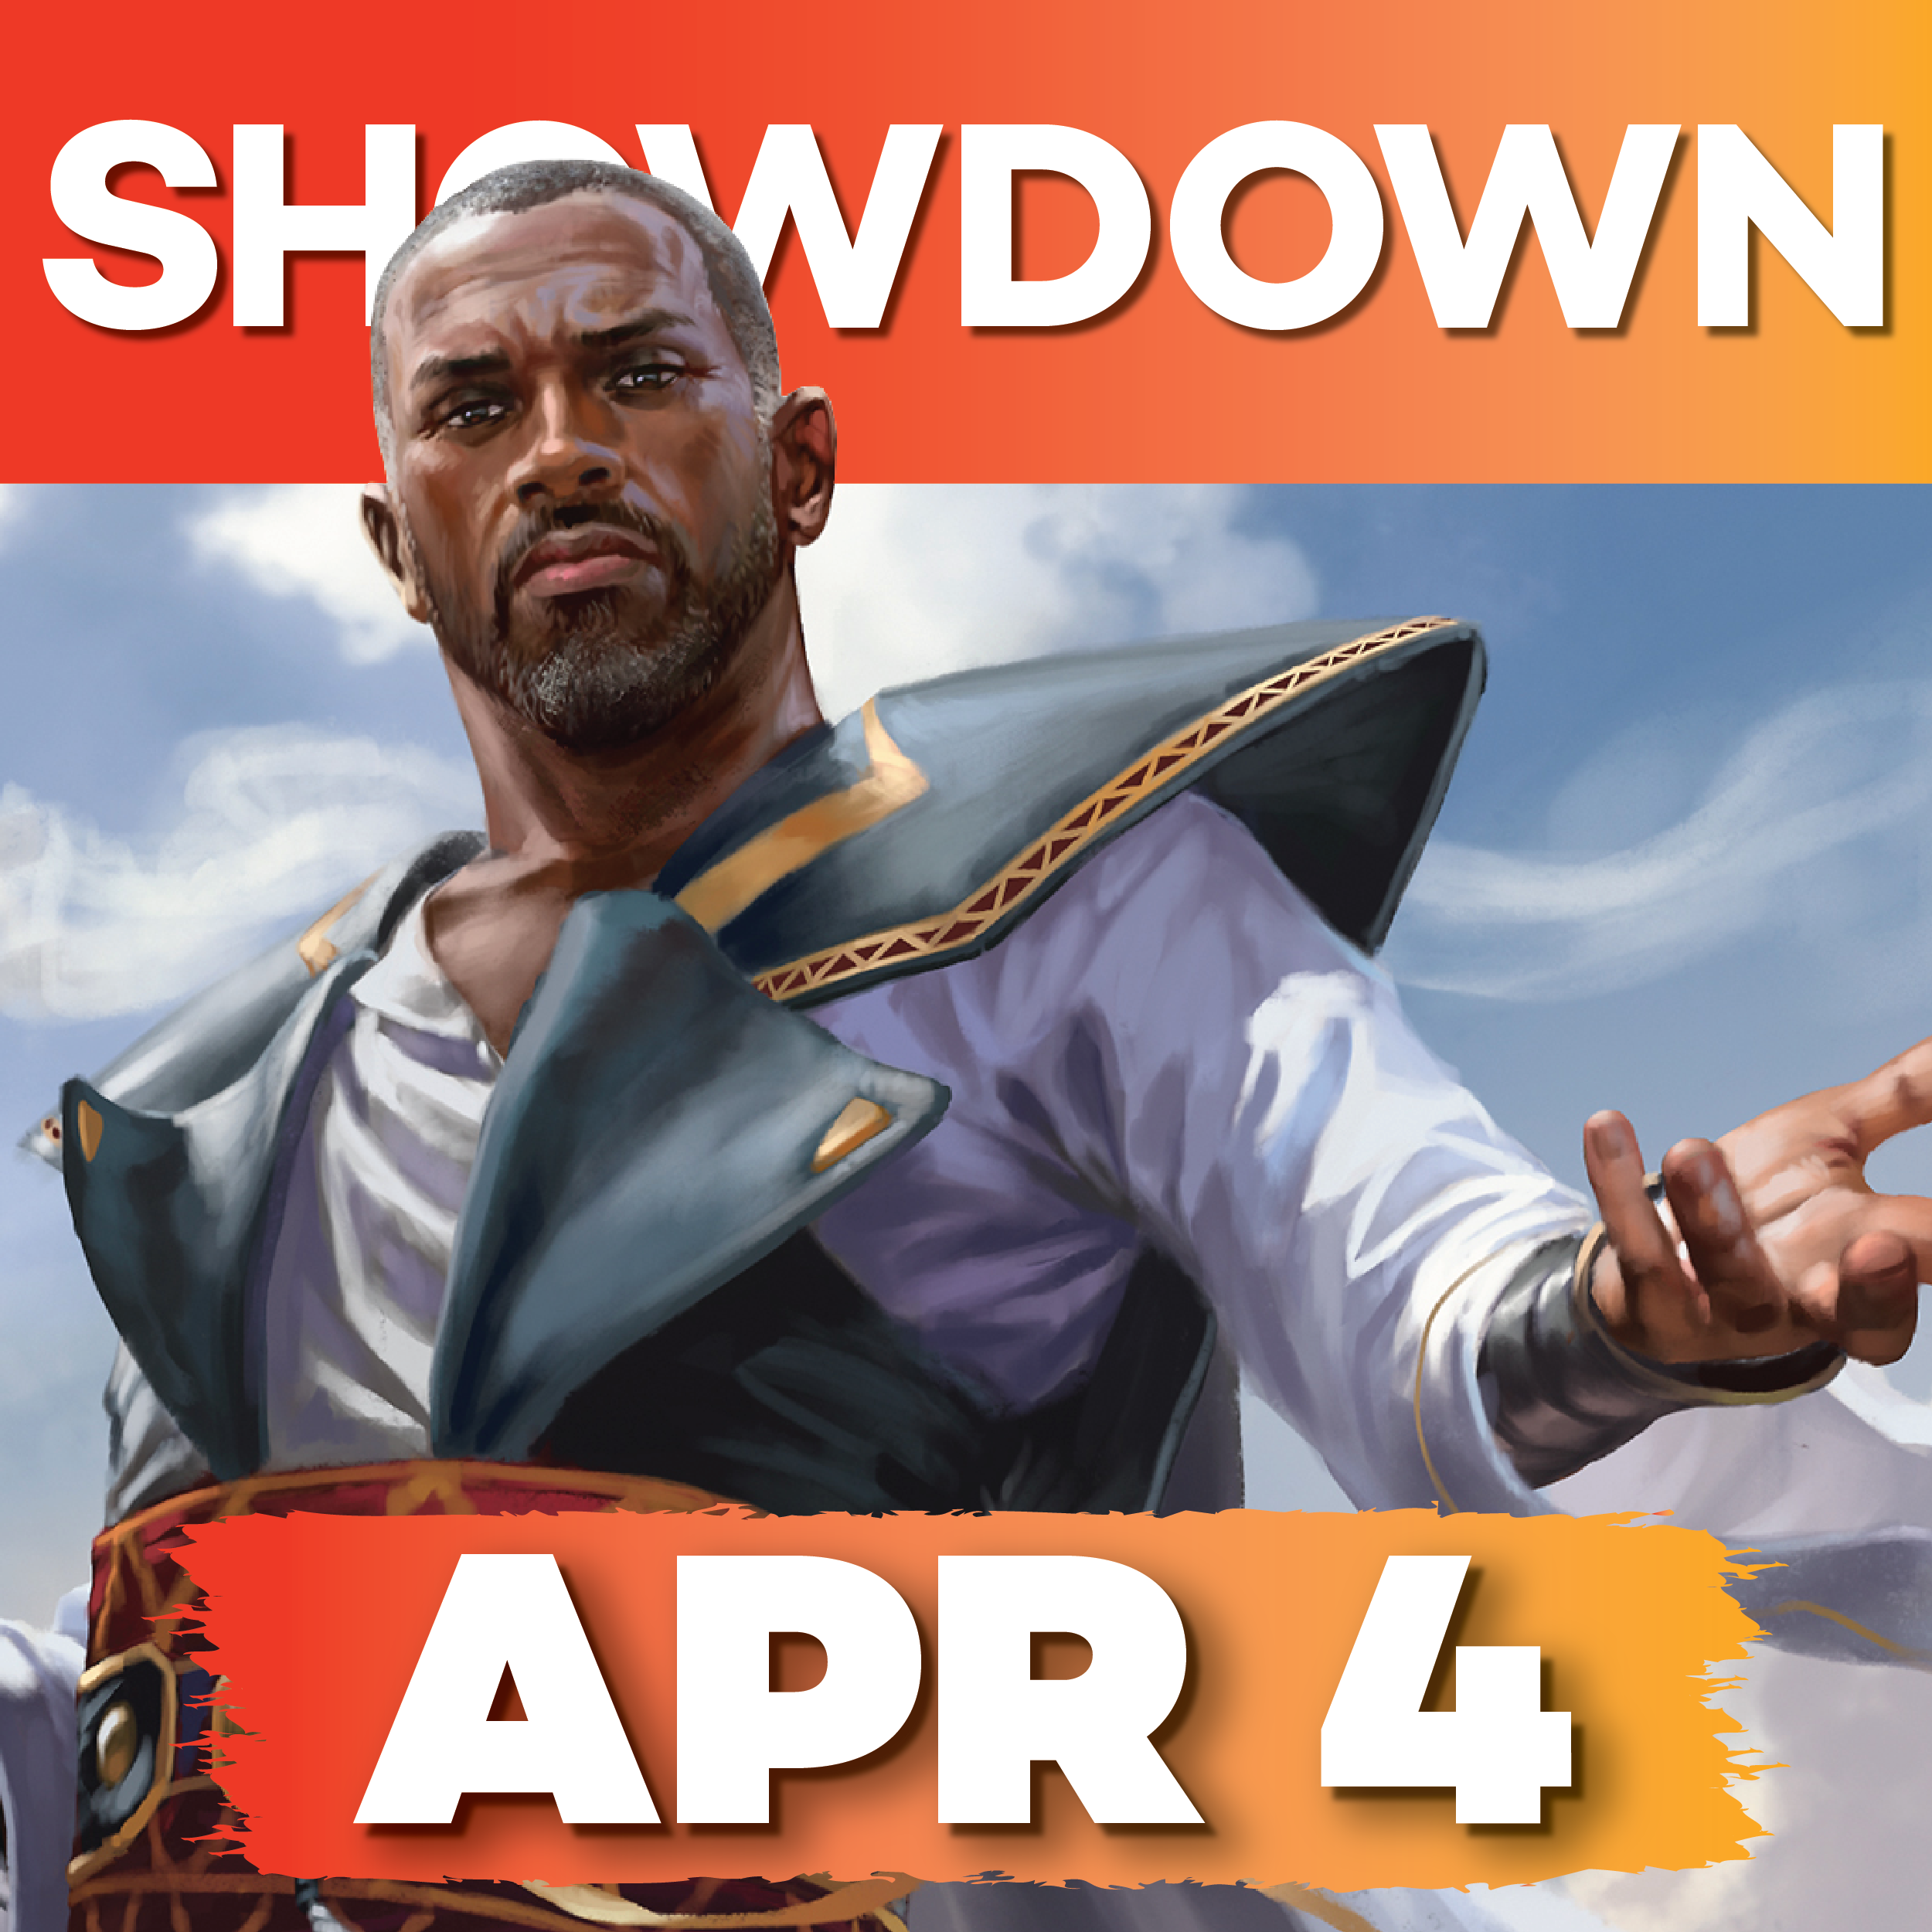 NRG Series - 04/04/20 - Modern - $10K Season 1 Showdown - Naperville, IL